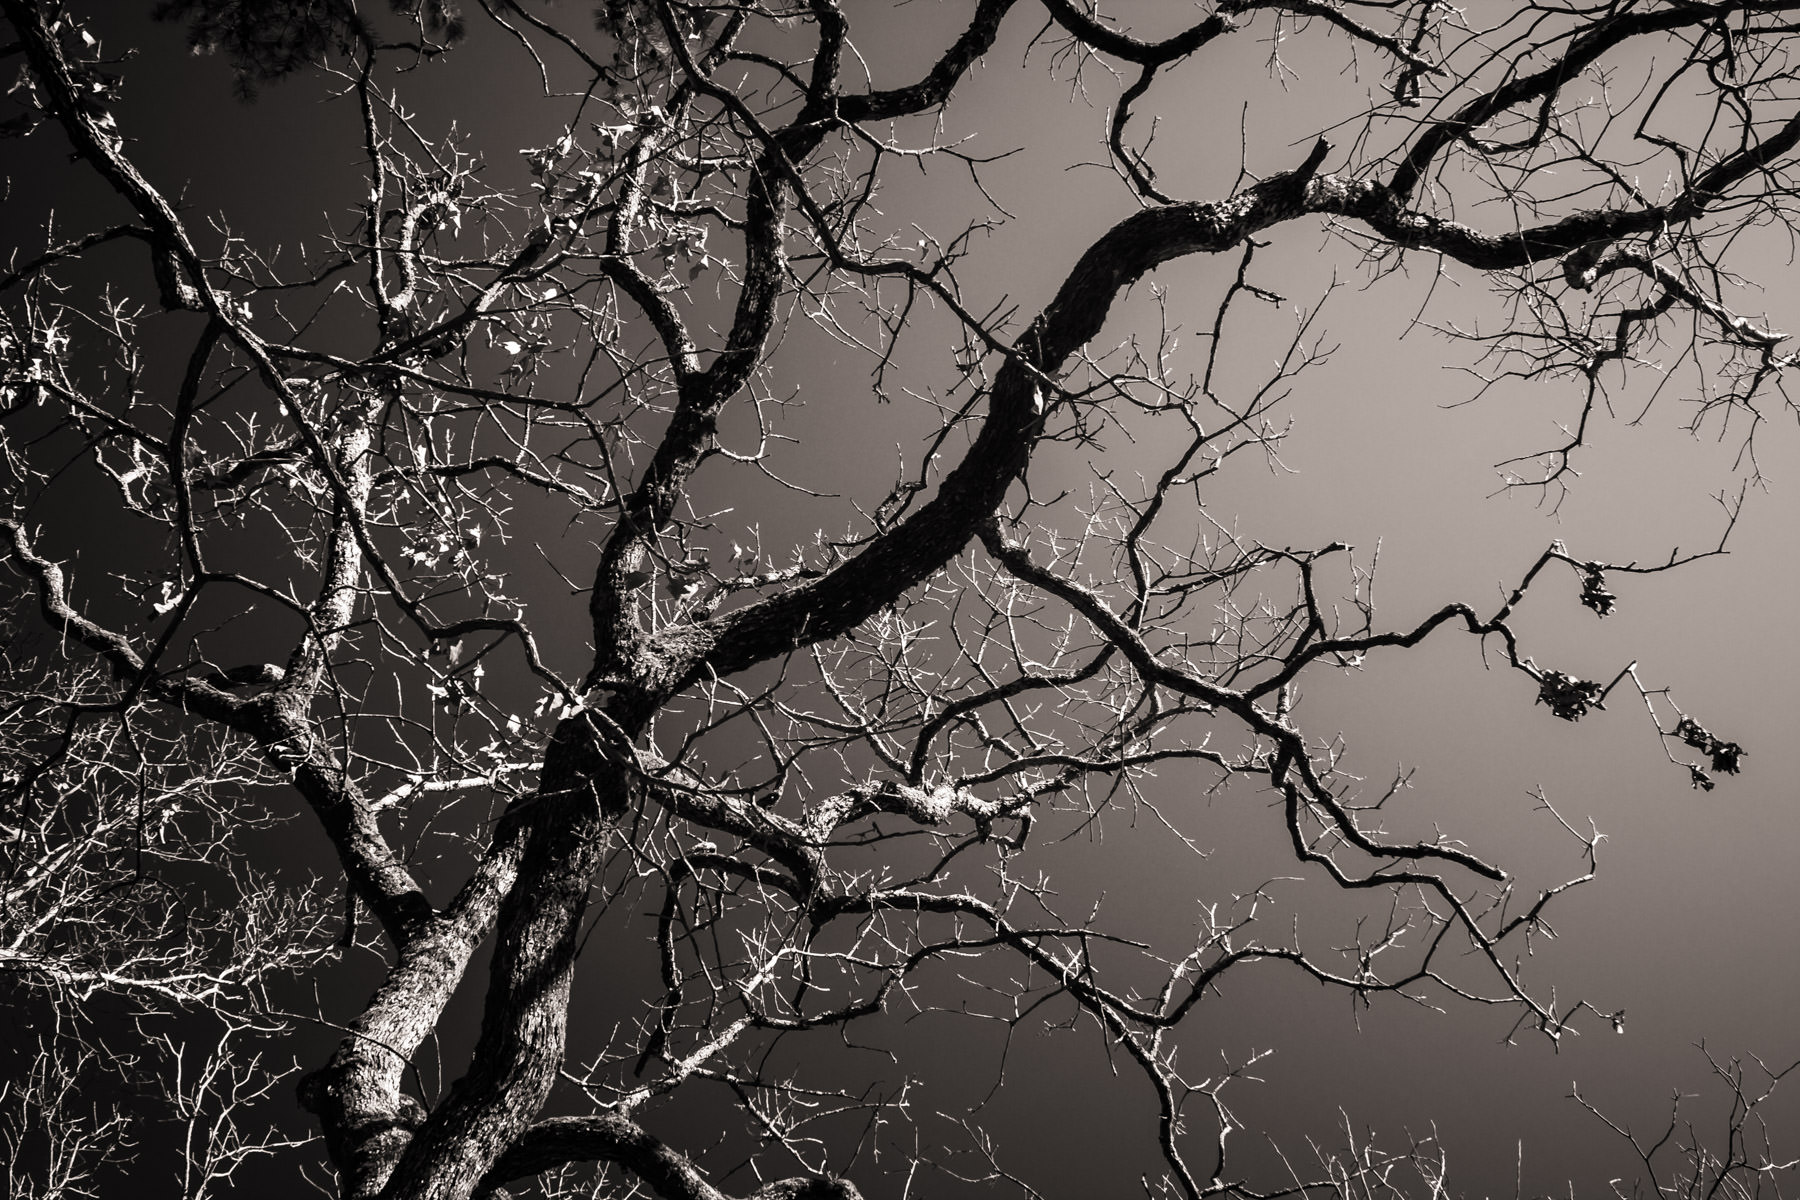 Tree branches devoid of leaves arch across the featureless sky over Hot Springs, Arkansas.